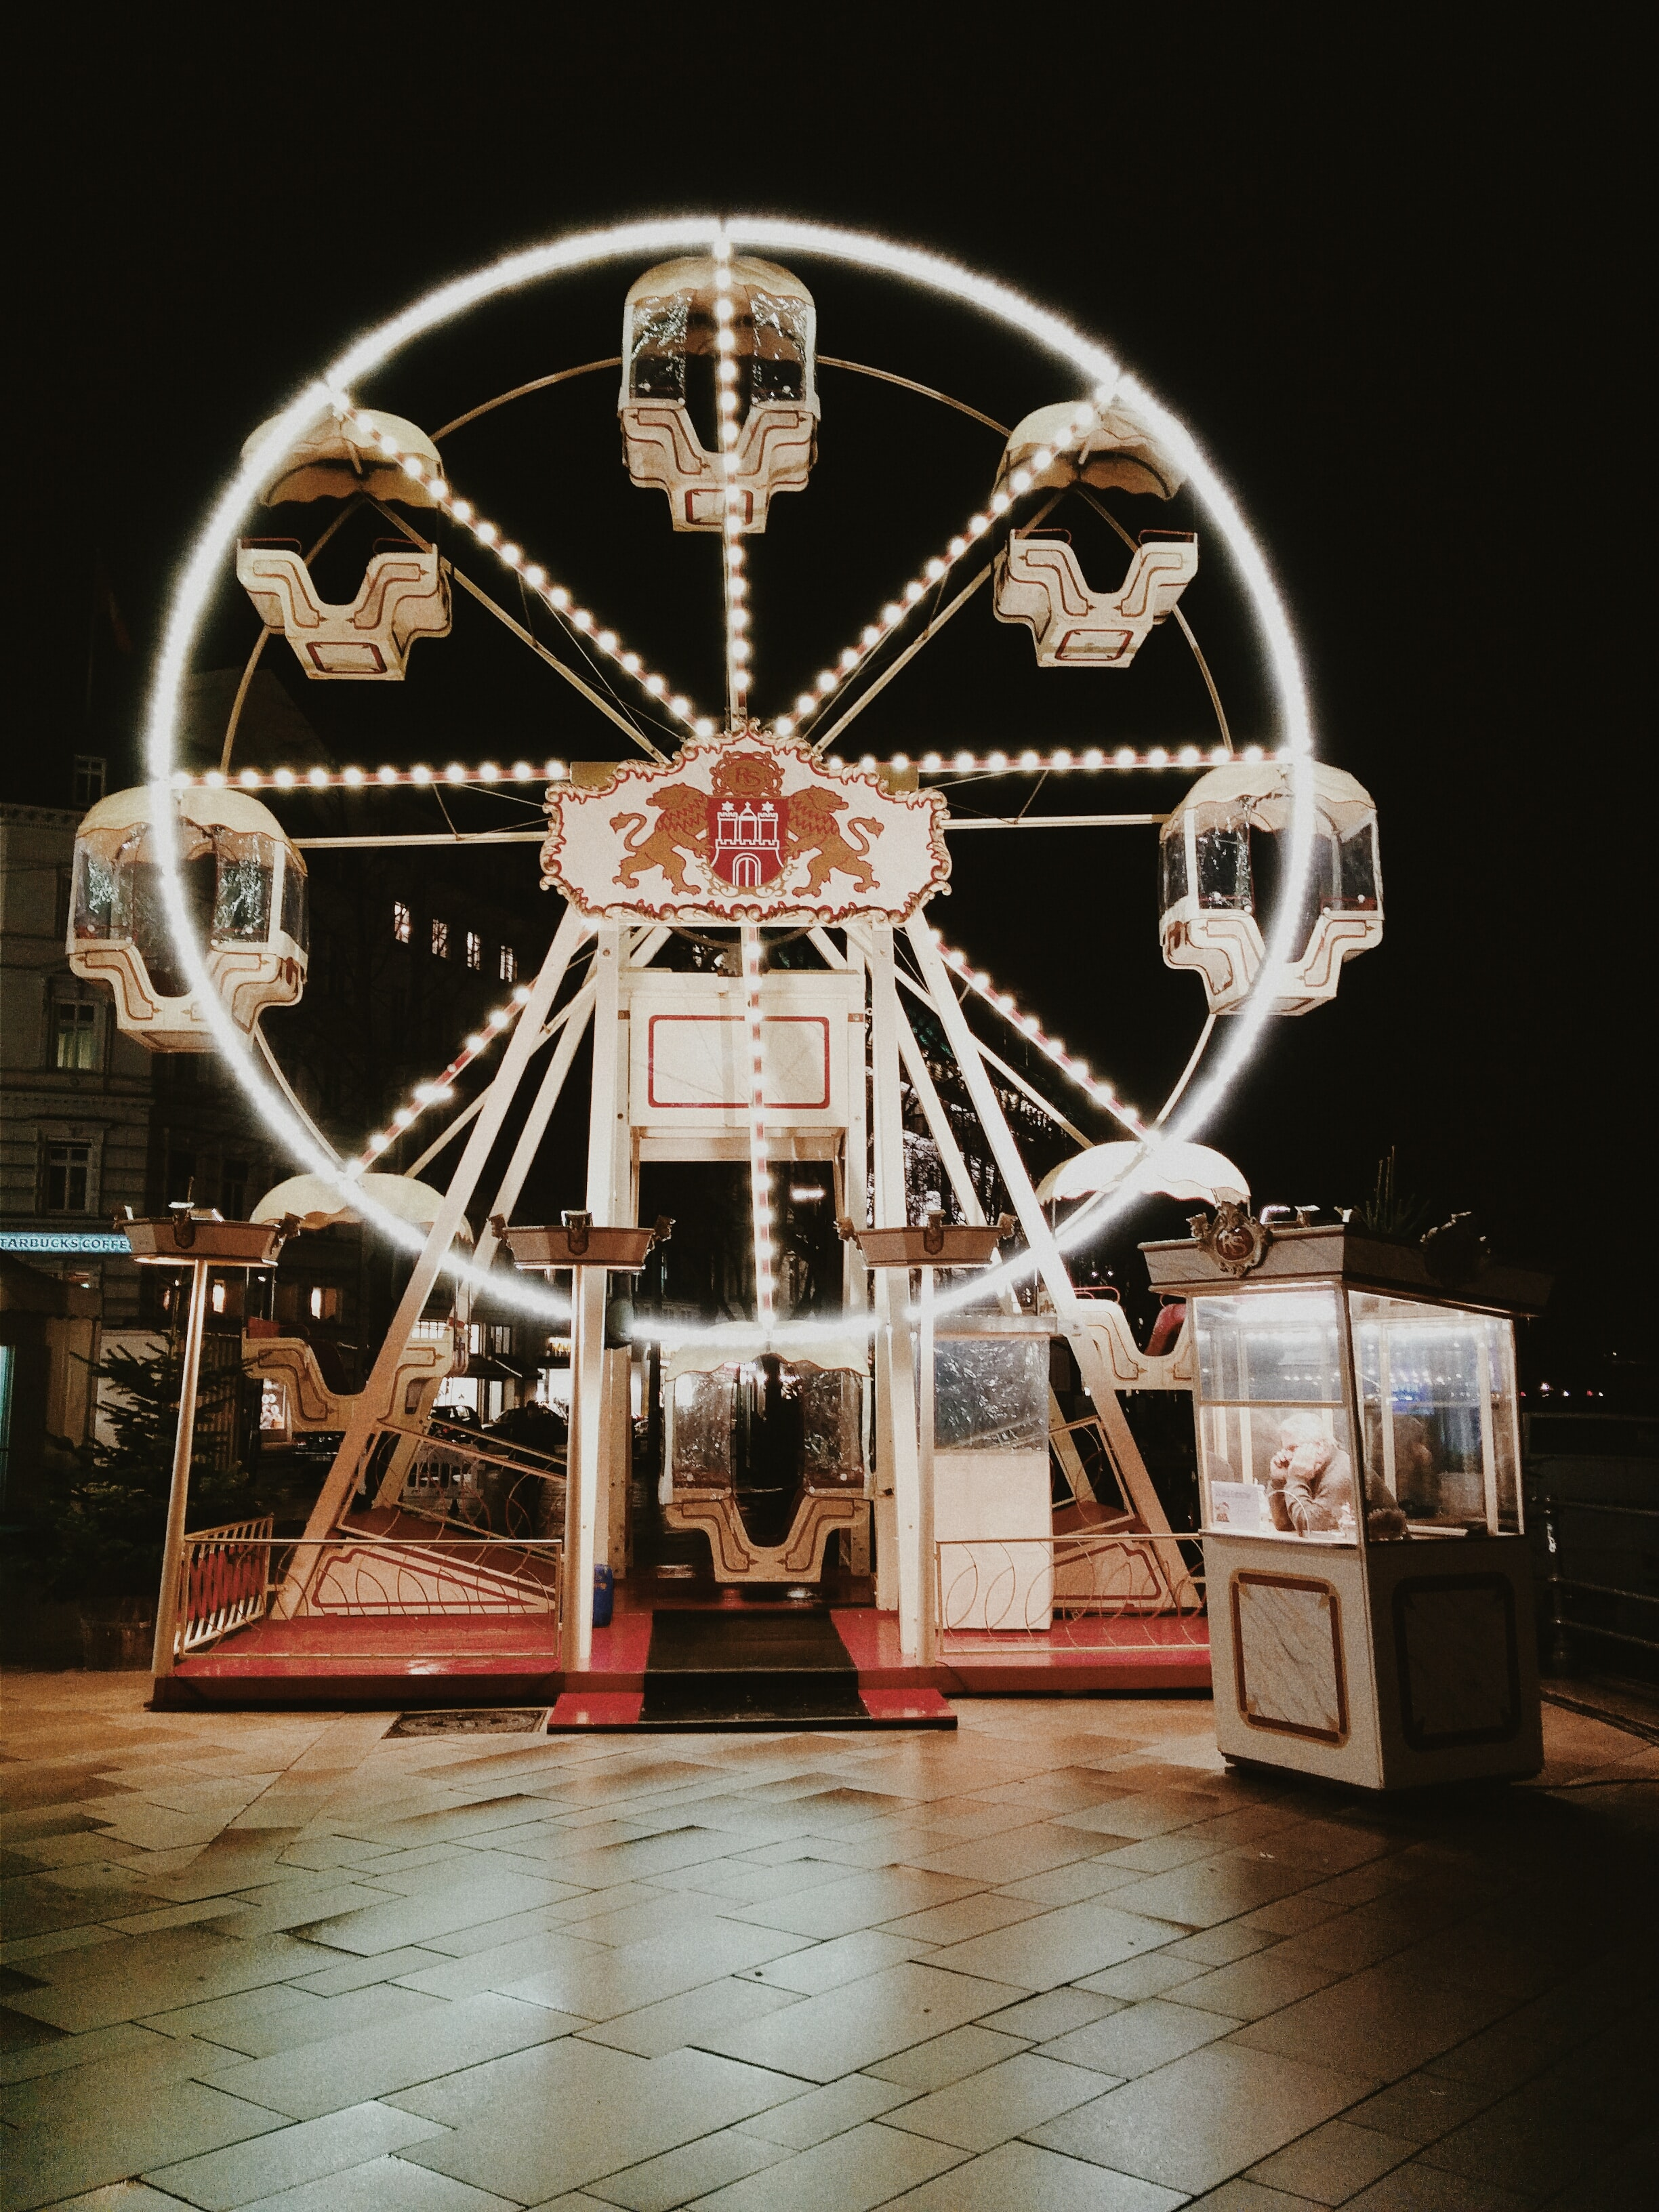 Small ferris wheel lit by bulbs at night with a person waiting in a booth